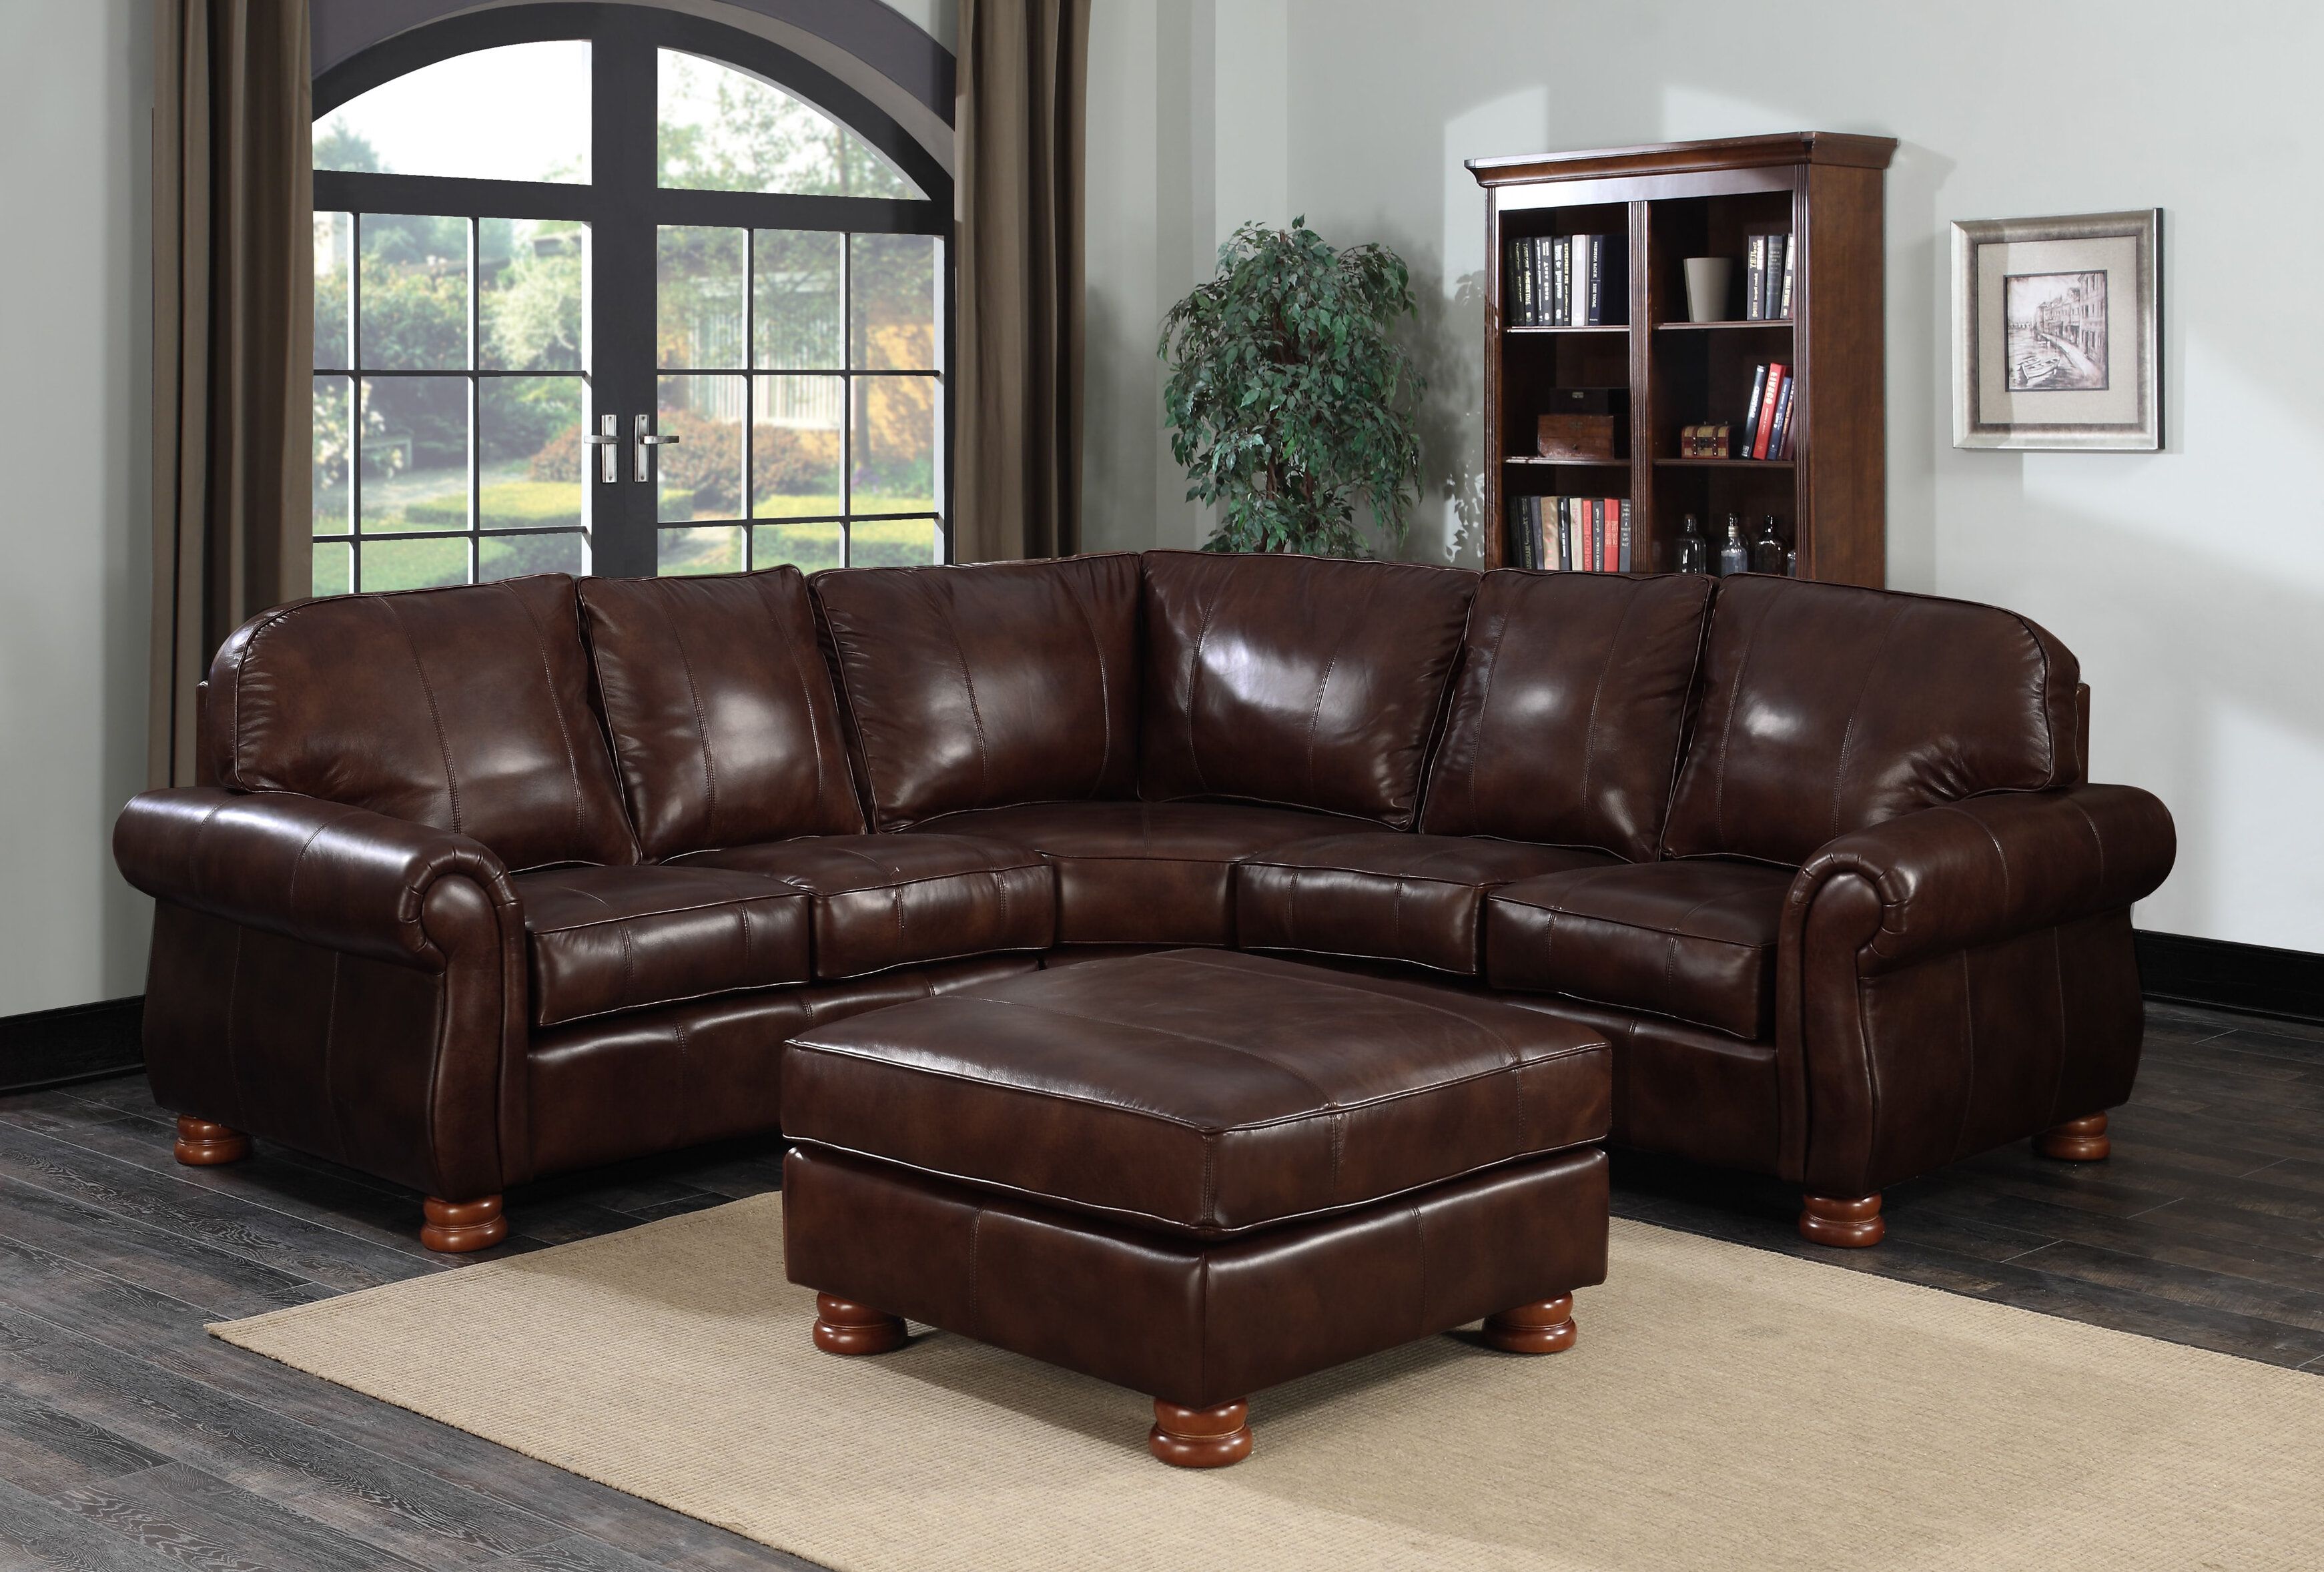 Beldale Symmetrical Leather Sectional With Ottoman